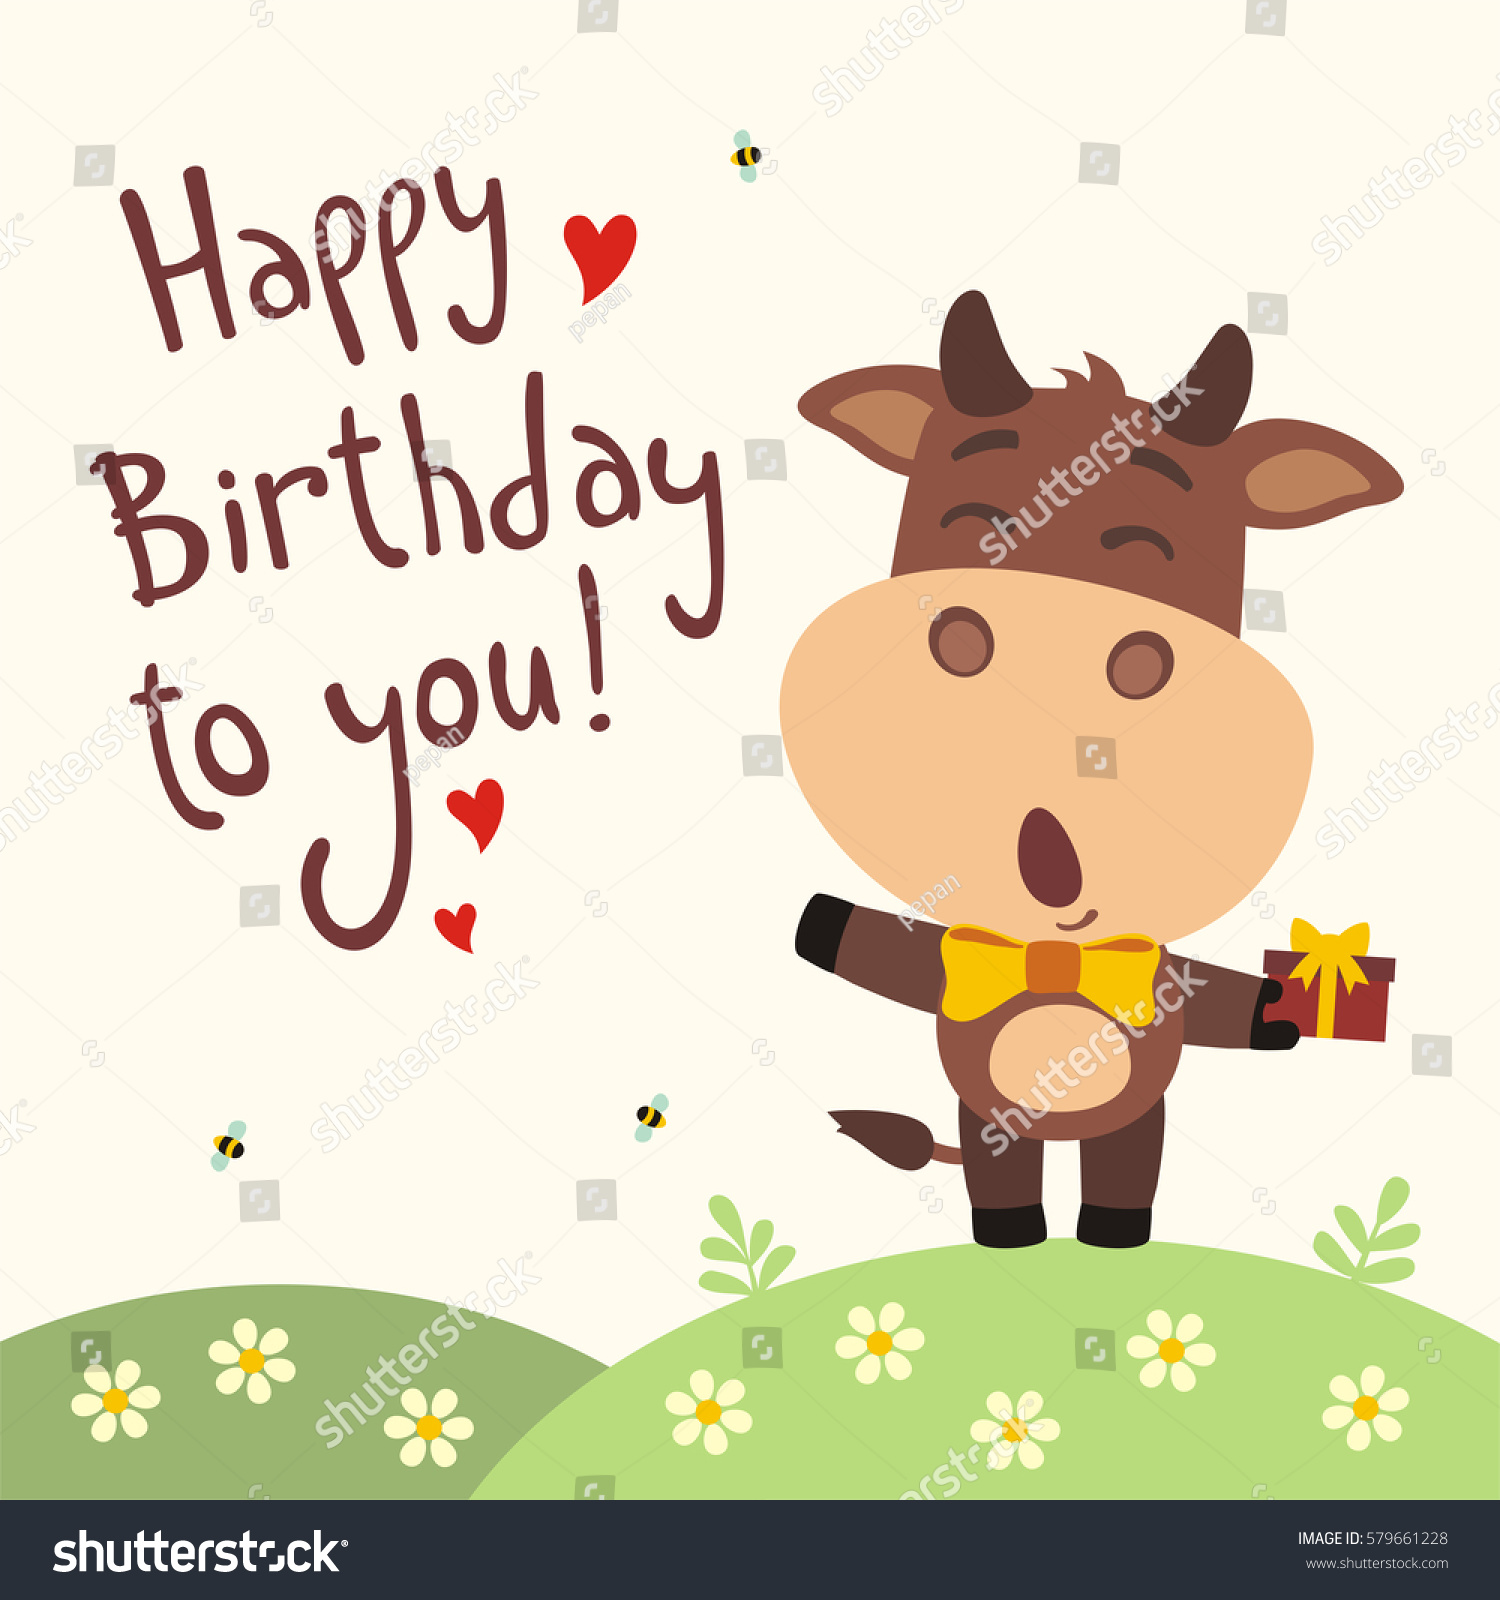 Funny cow sings song happy birthday stock vector royalty free funny cow sings song happy birthday to you greeting card in cartoon style m4hsunfo